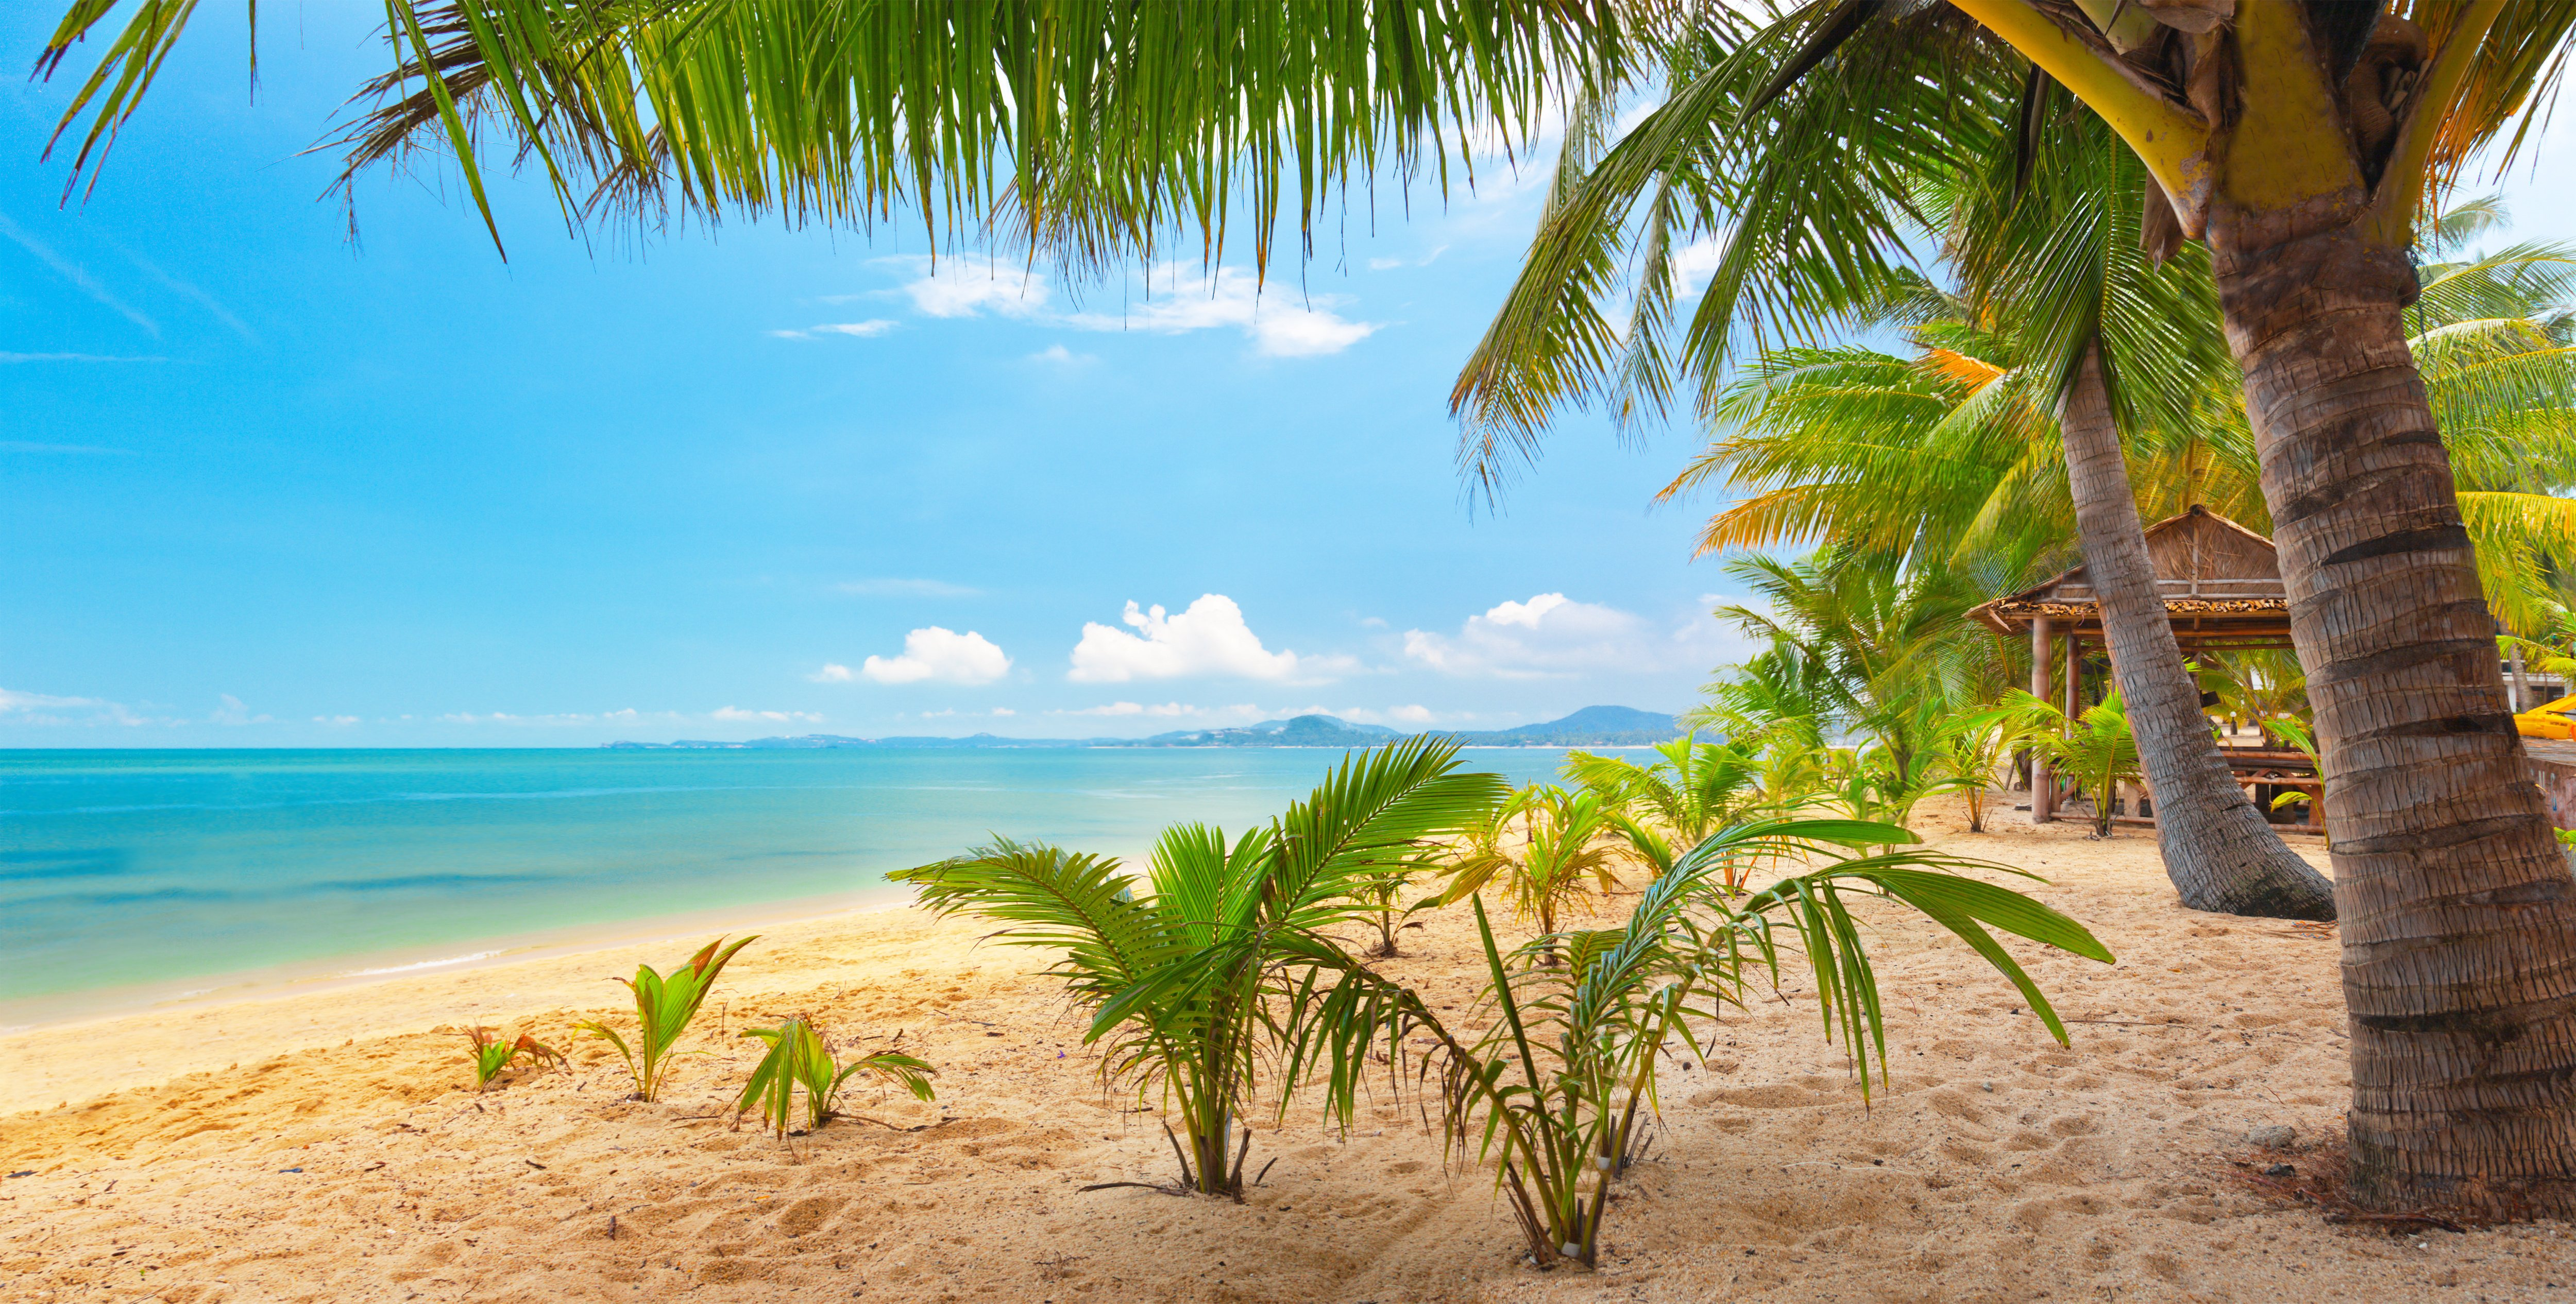 Sand sea sky palm trees nature tropical landscape beautiful wallpaper 5000x2532 282331 - Walpepar photos ...